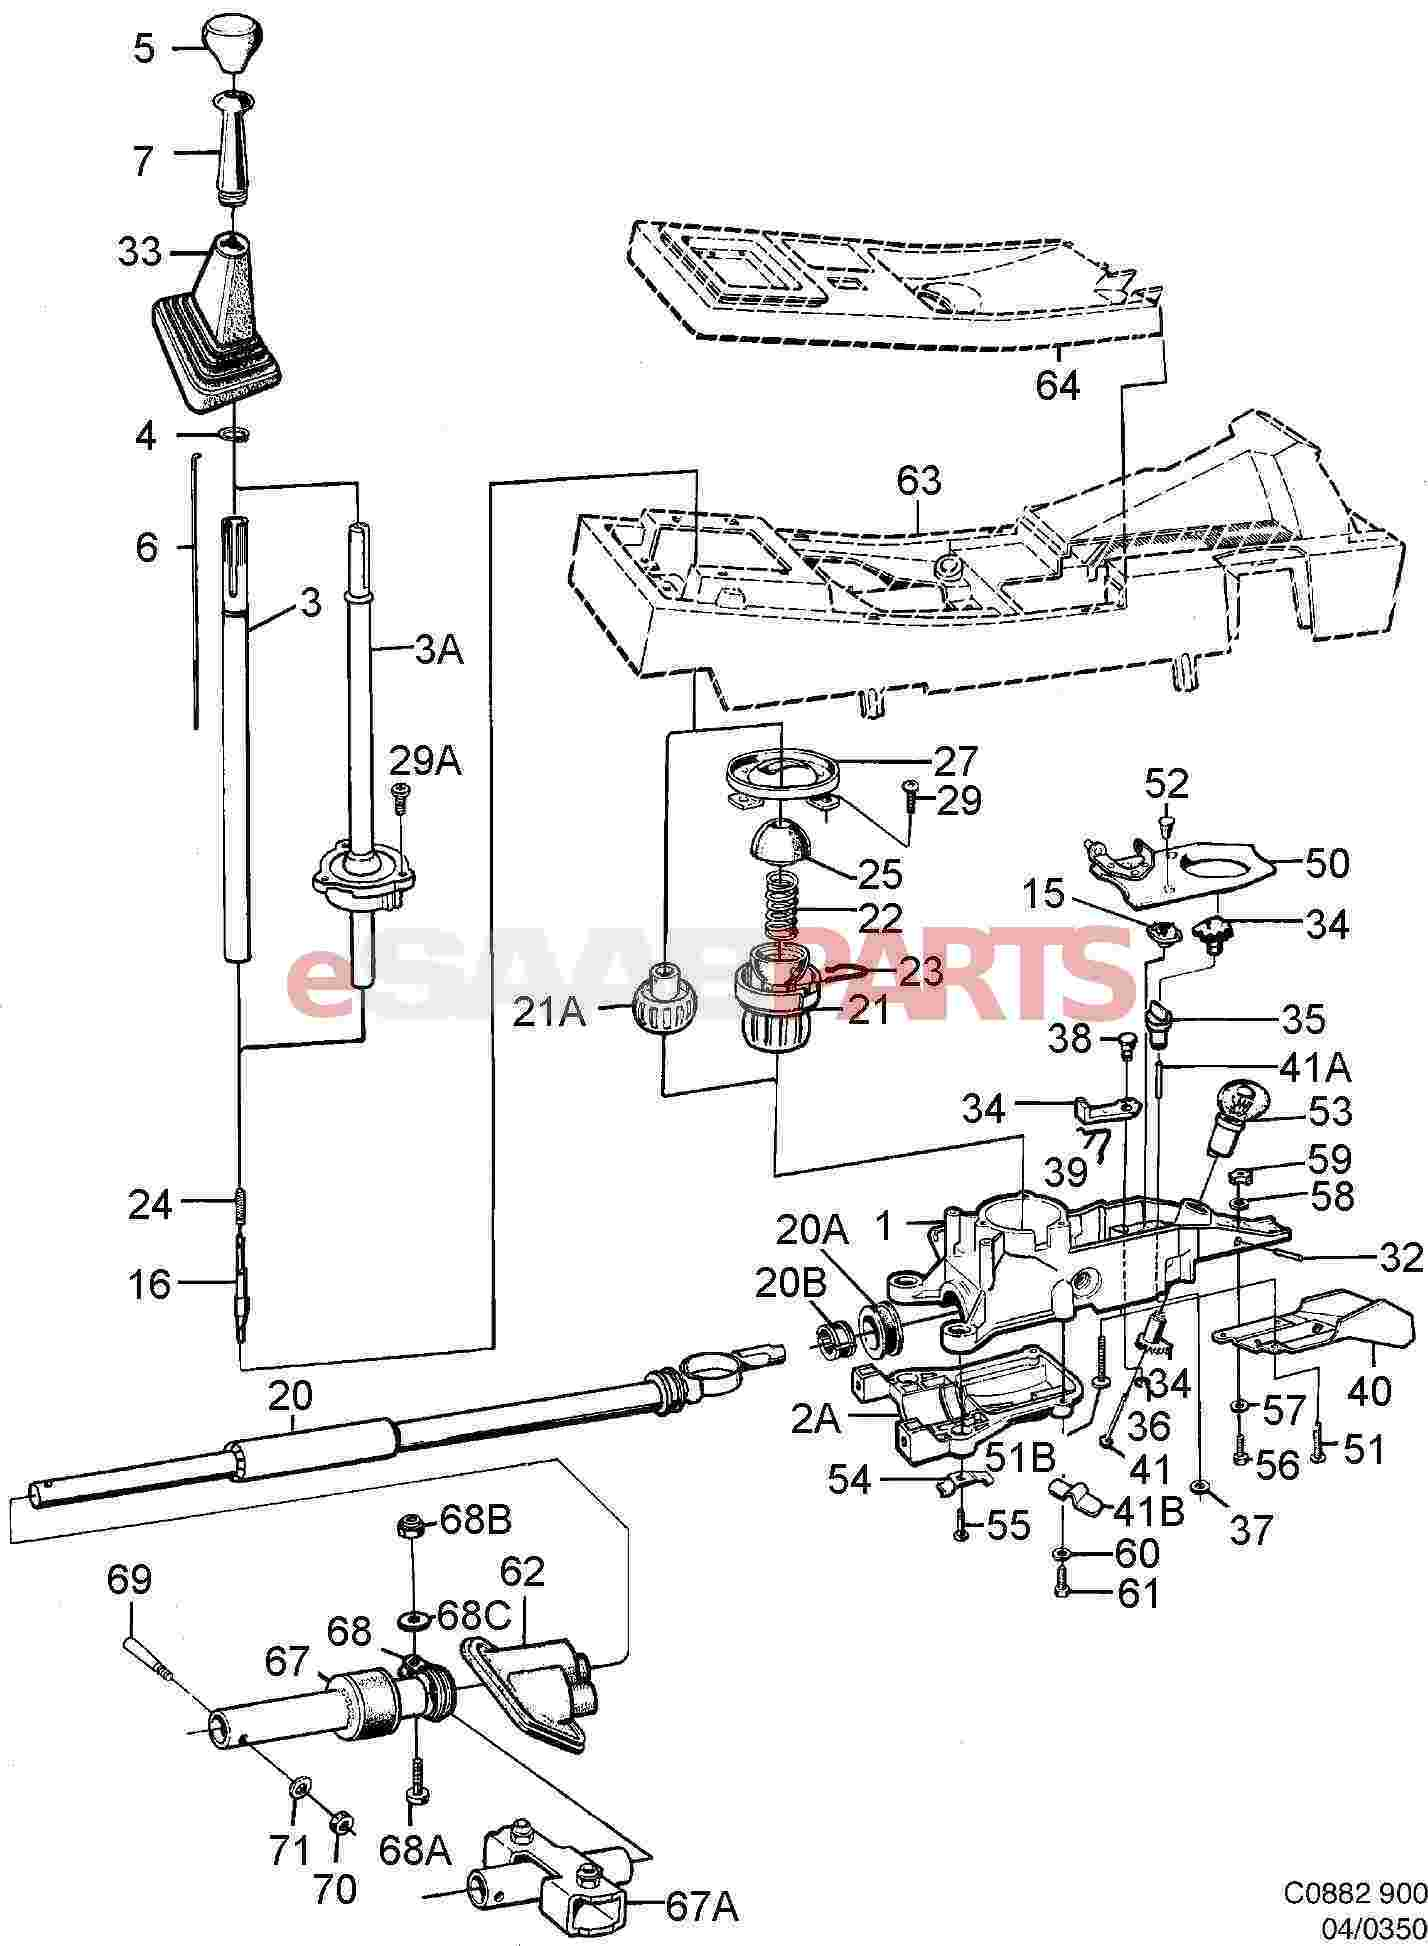 Service manual [Exploded View 1986 Saab 900 Manual